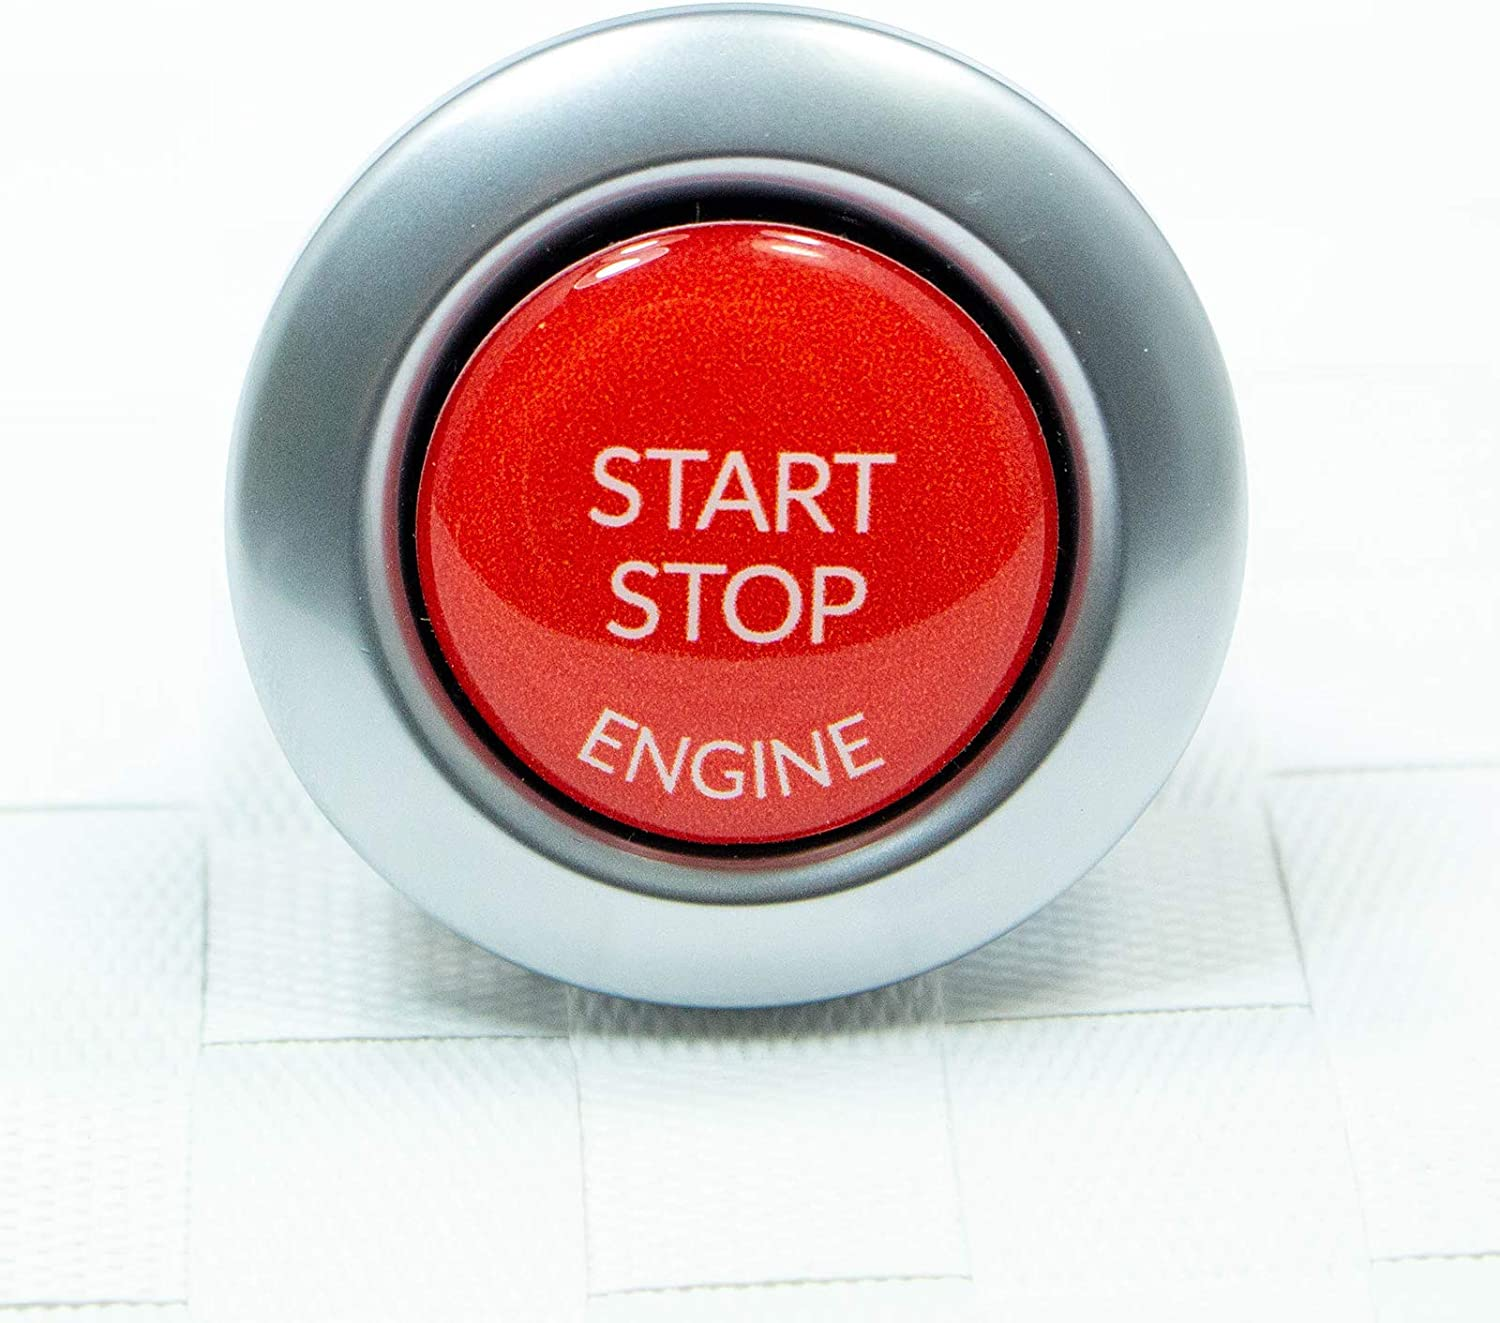 Start Stop Engine Button 1 Piece Sticker Repair Switch Protection Cap Replacement Button Button Cover Ignition Key Cover Ignition Red Auto